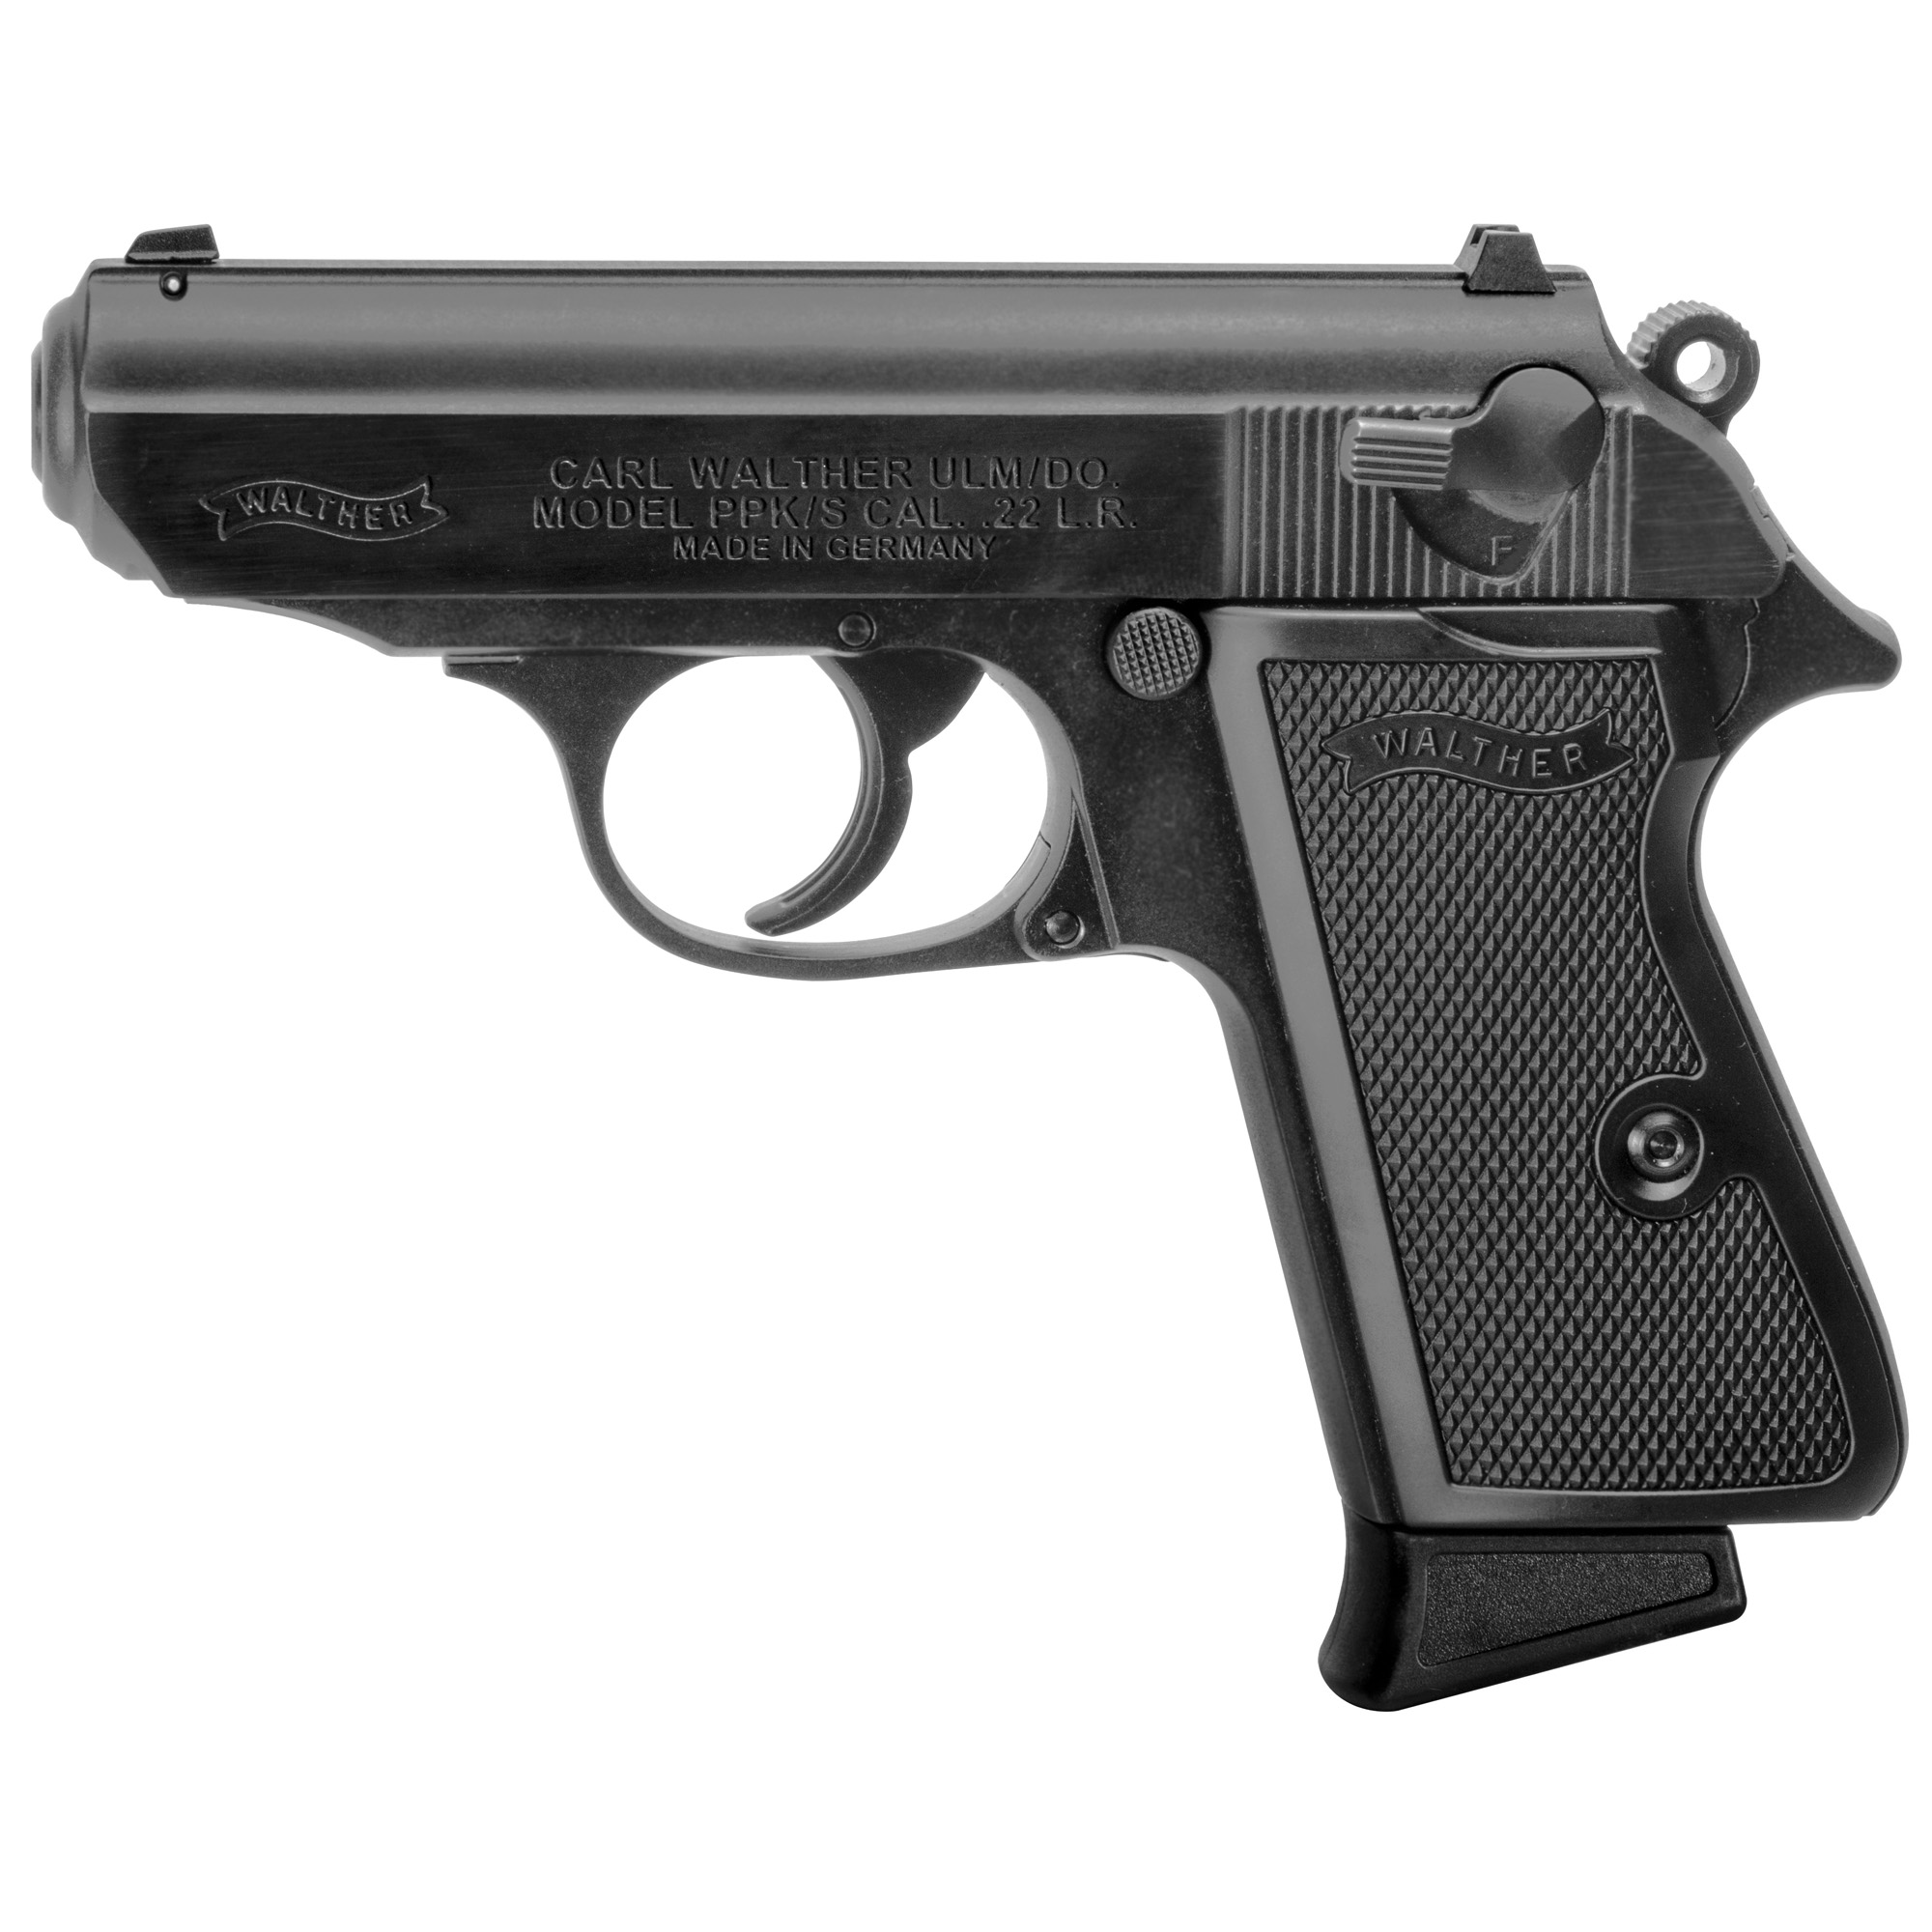 """The PPK/S .22 blends the iconic PPK design with the fun and cost savings of the .22 L.R. The PPK/S .22 is identical to its PPK brother in .380. But you can shoot the .22 rimfire for pennies a shot and recoil is minimal. The PPK/S .22 is great for the whole family. As a quality firearm"""" you can be proud to own it and someday pass it on to the next generation."""